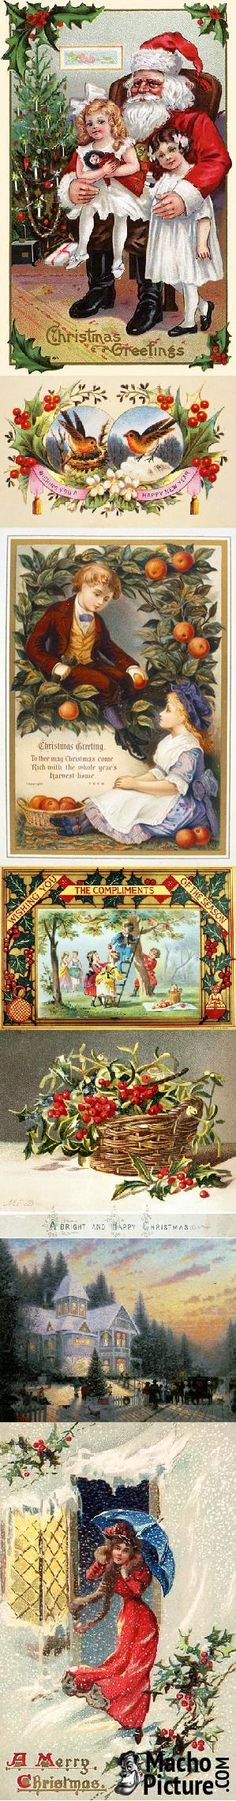 Victorian christmas cards to buy - 8 PHOTO!